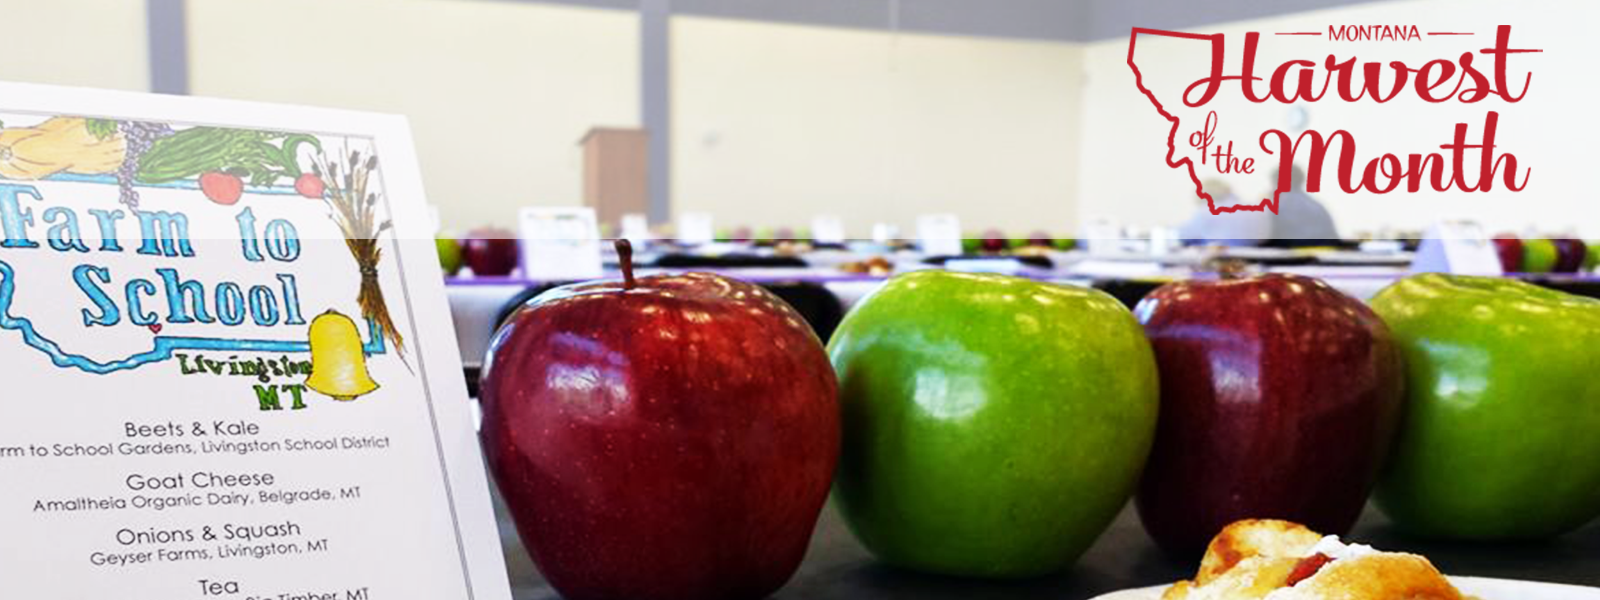 Apples are October's Montana Harvest of the Month!